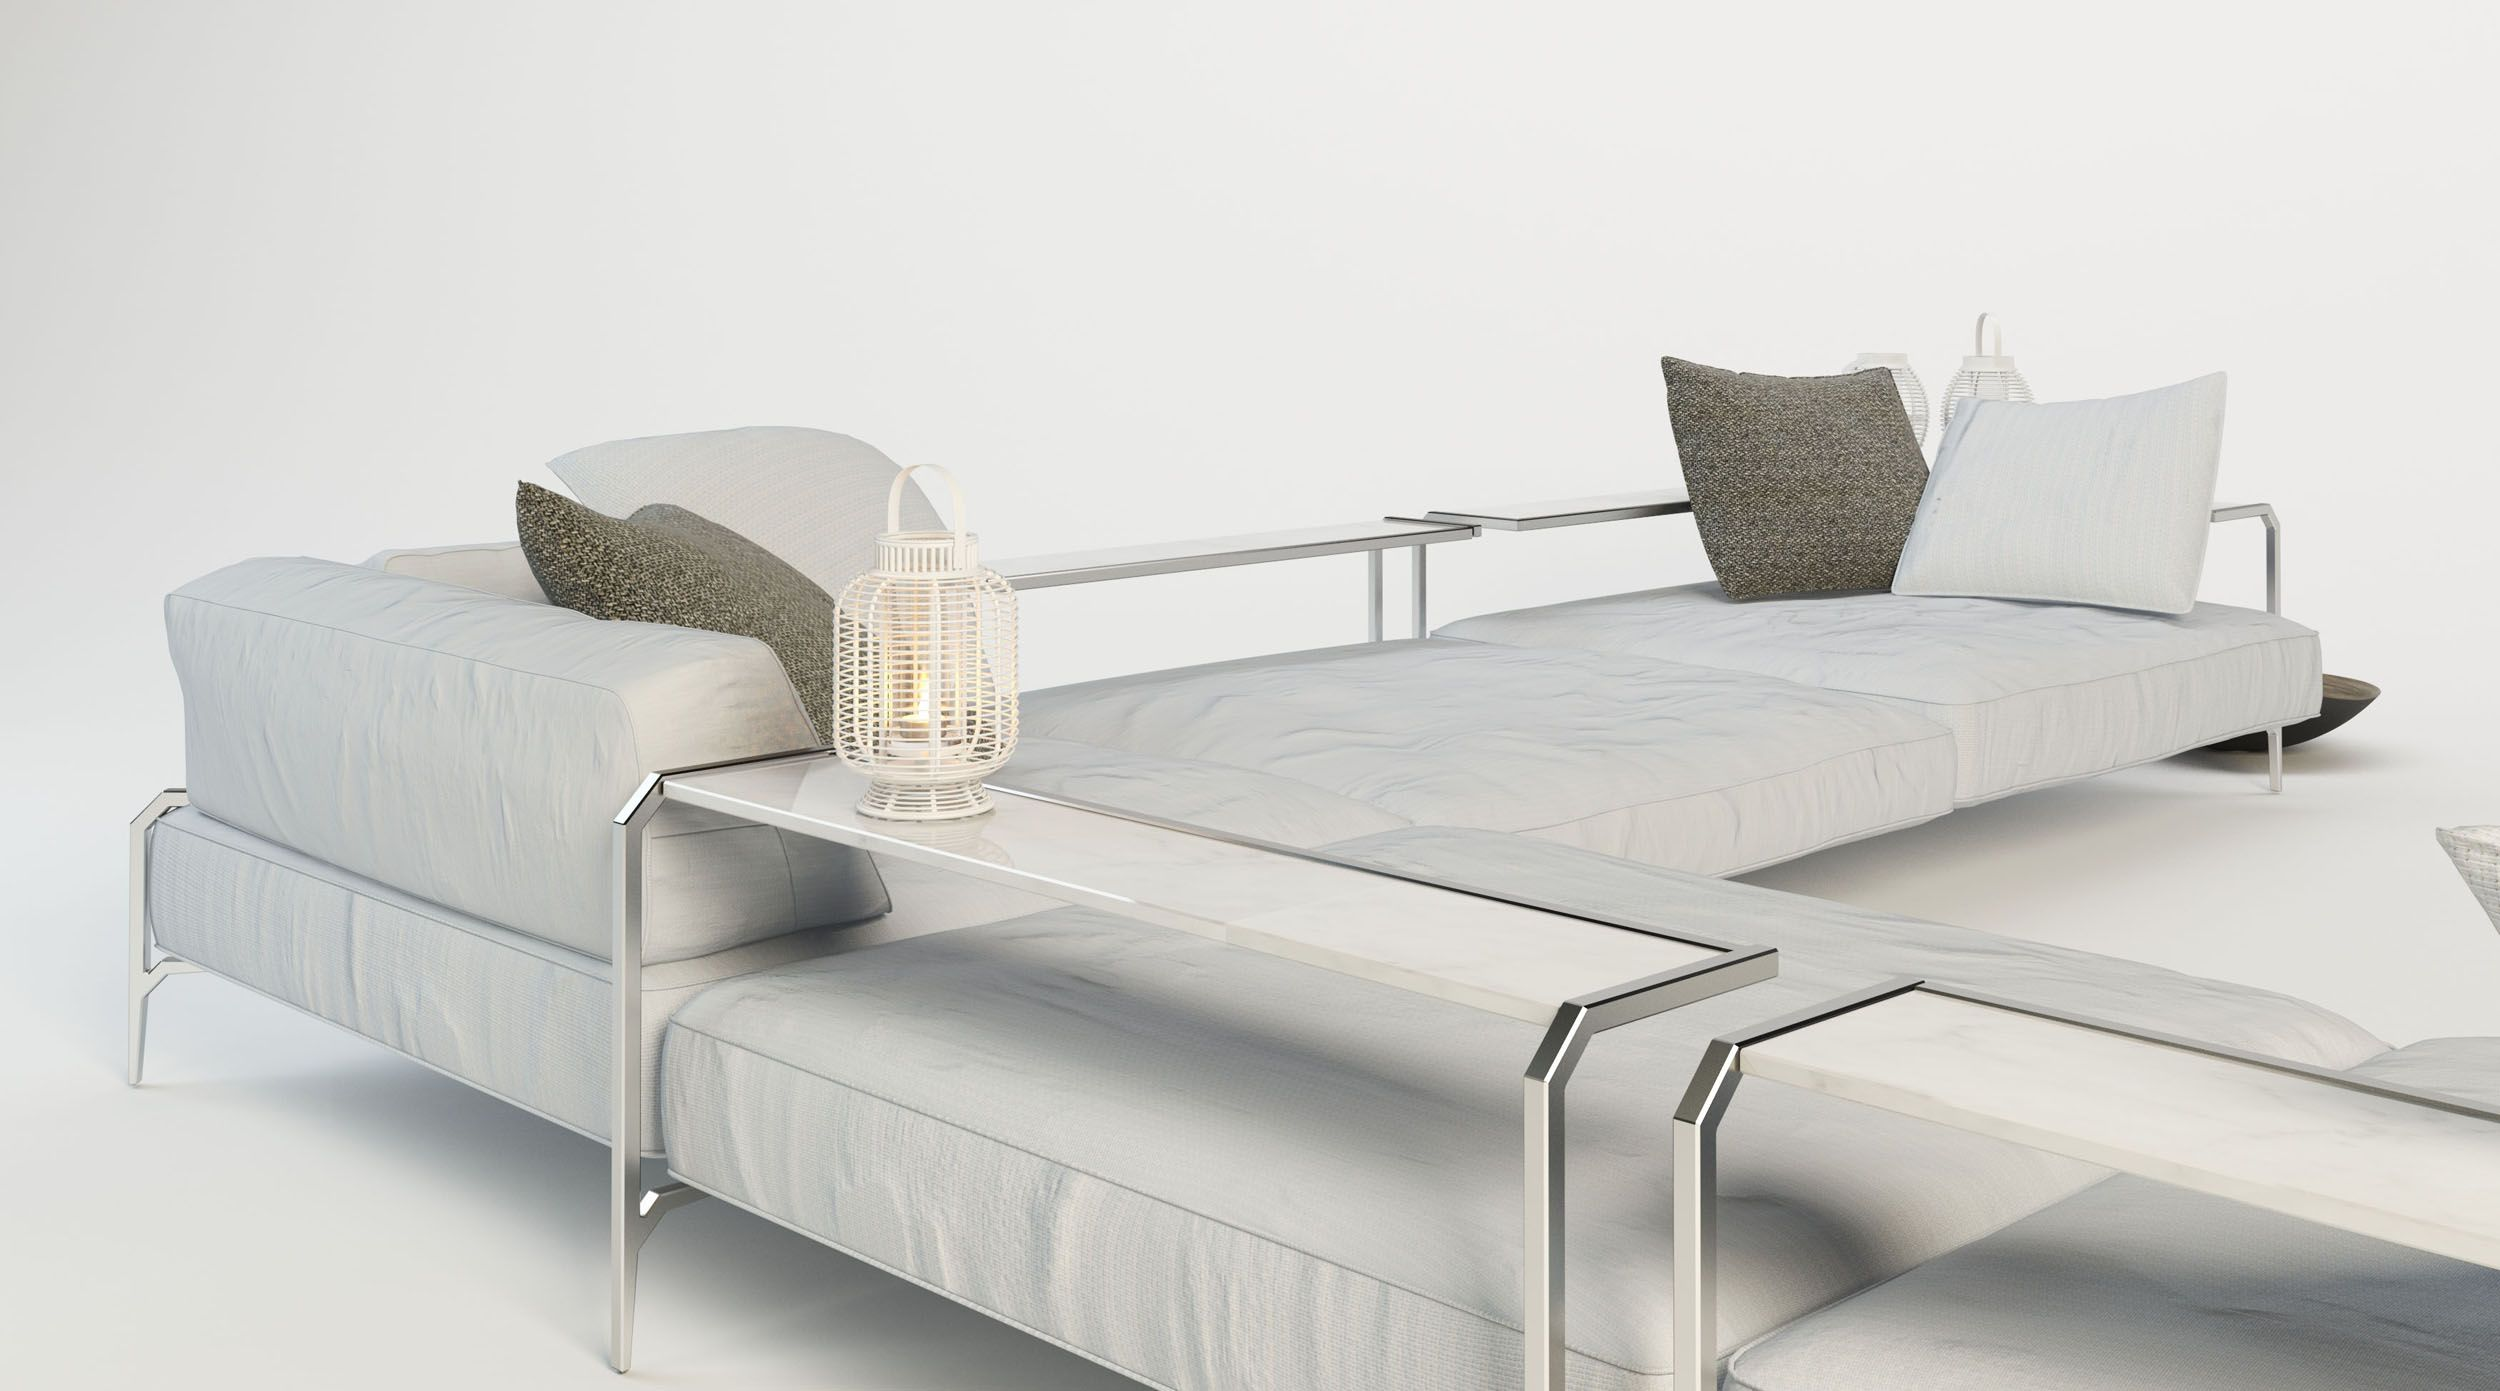 Sofa In A Box Companies Outdoor Seating System Sabal Design By Matteo Nunziati And